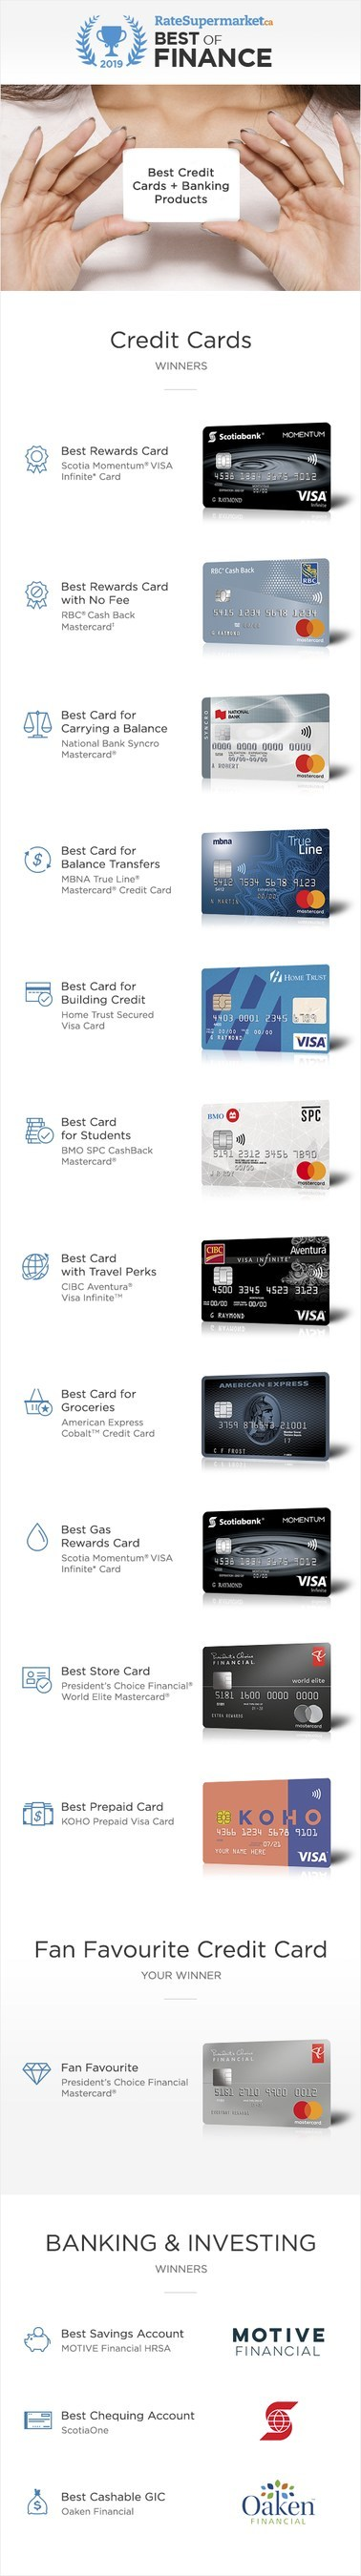 Eighth Annual Report Reveals Canada's Best Credit Cards and Personal Banking Products for 2019 - Best of Finance 2019 (CNW Group/RateSupermarket.ca)